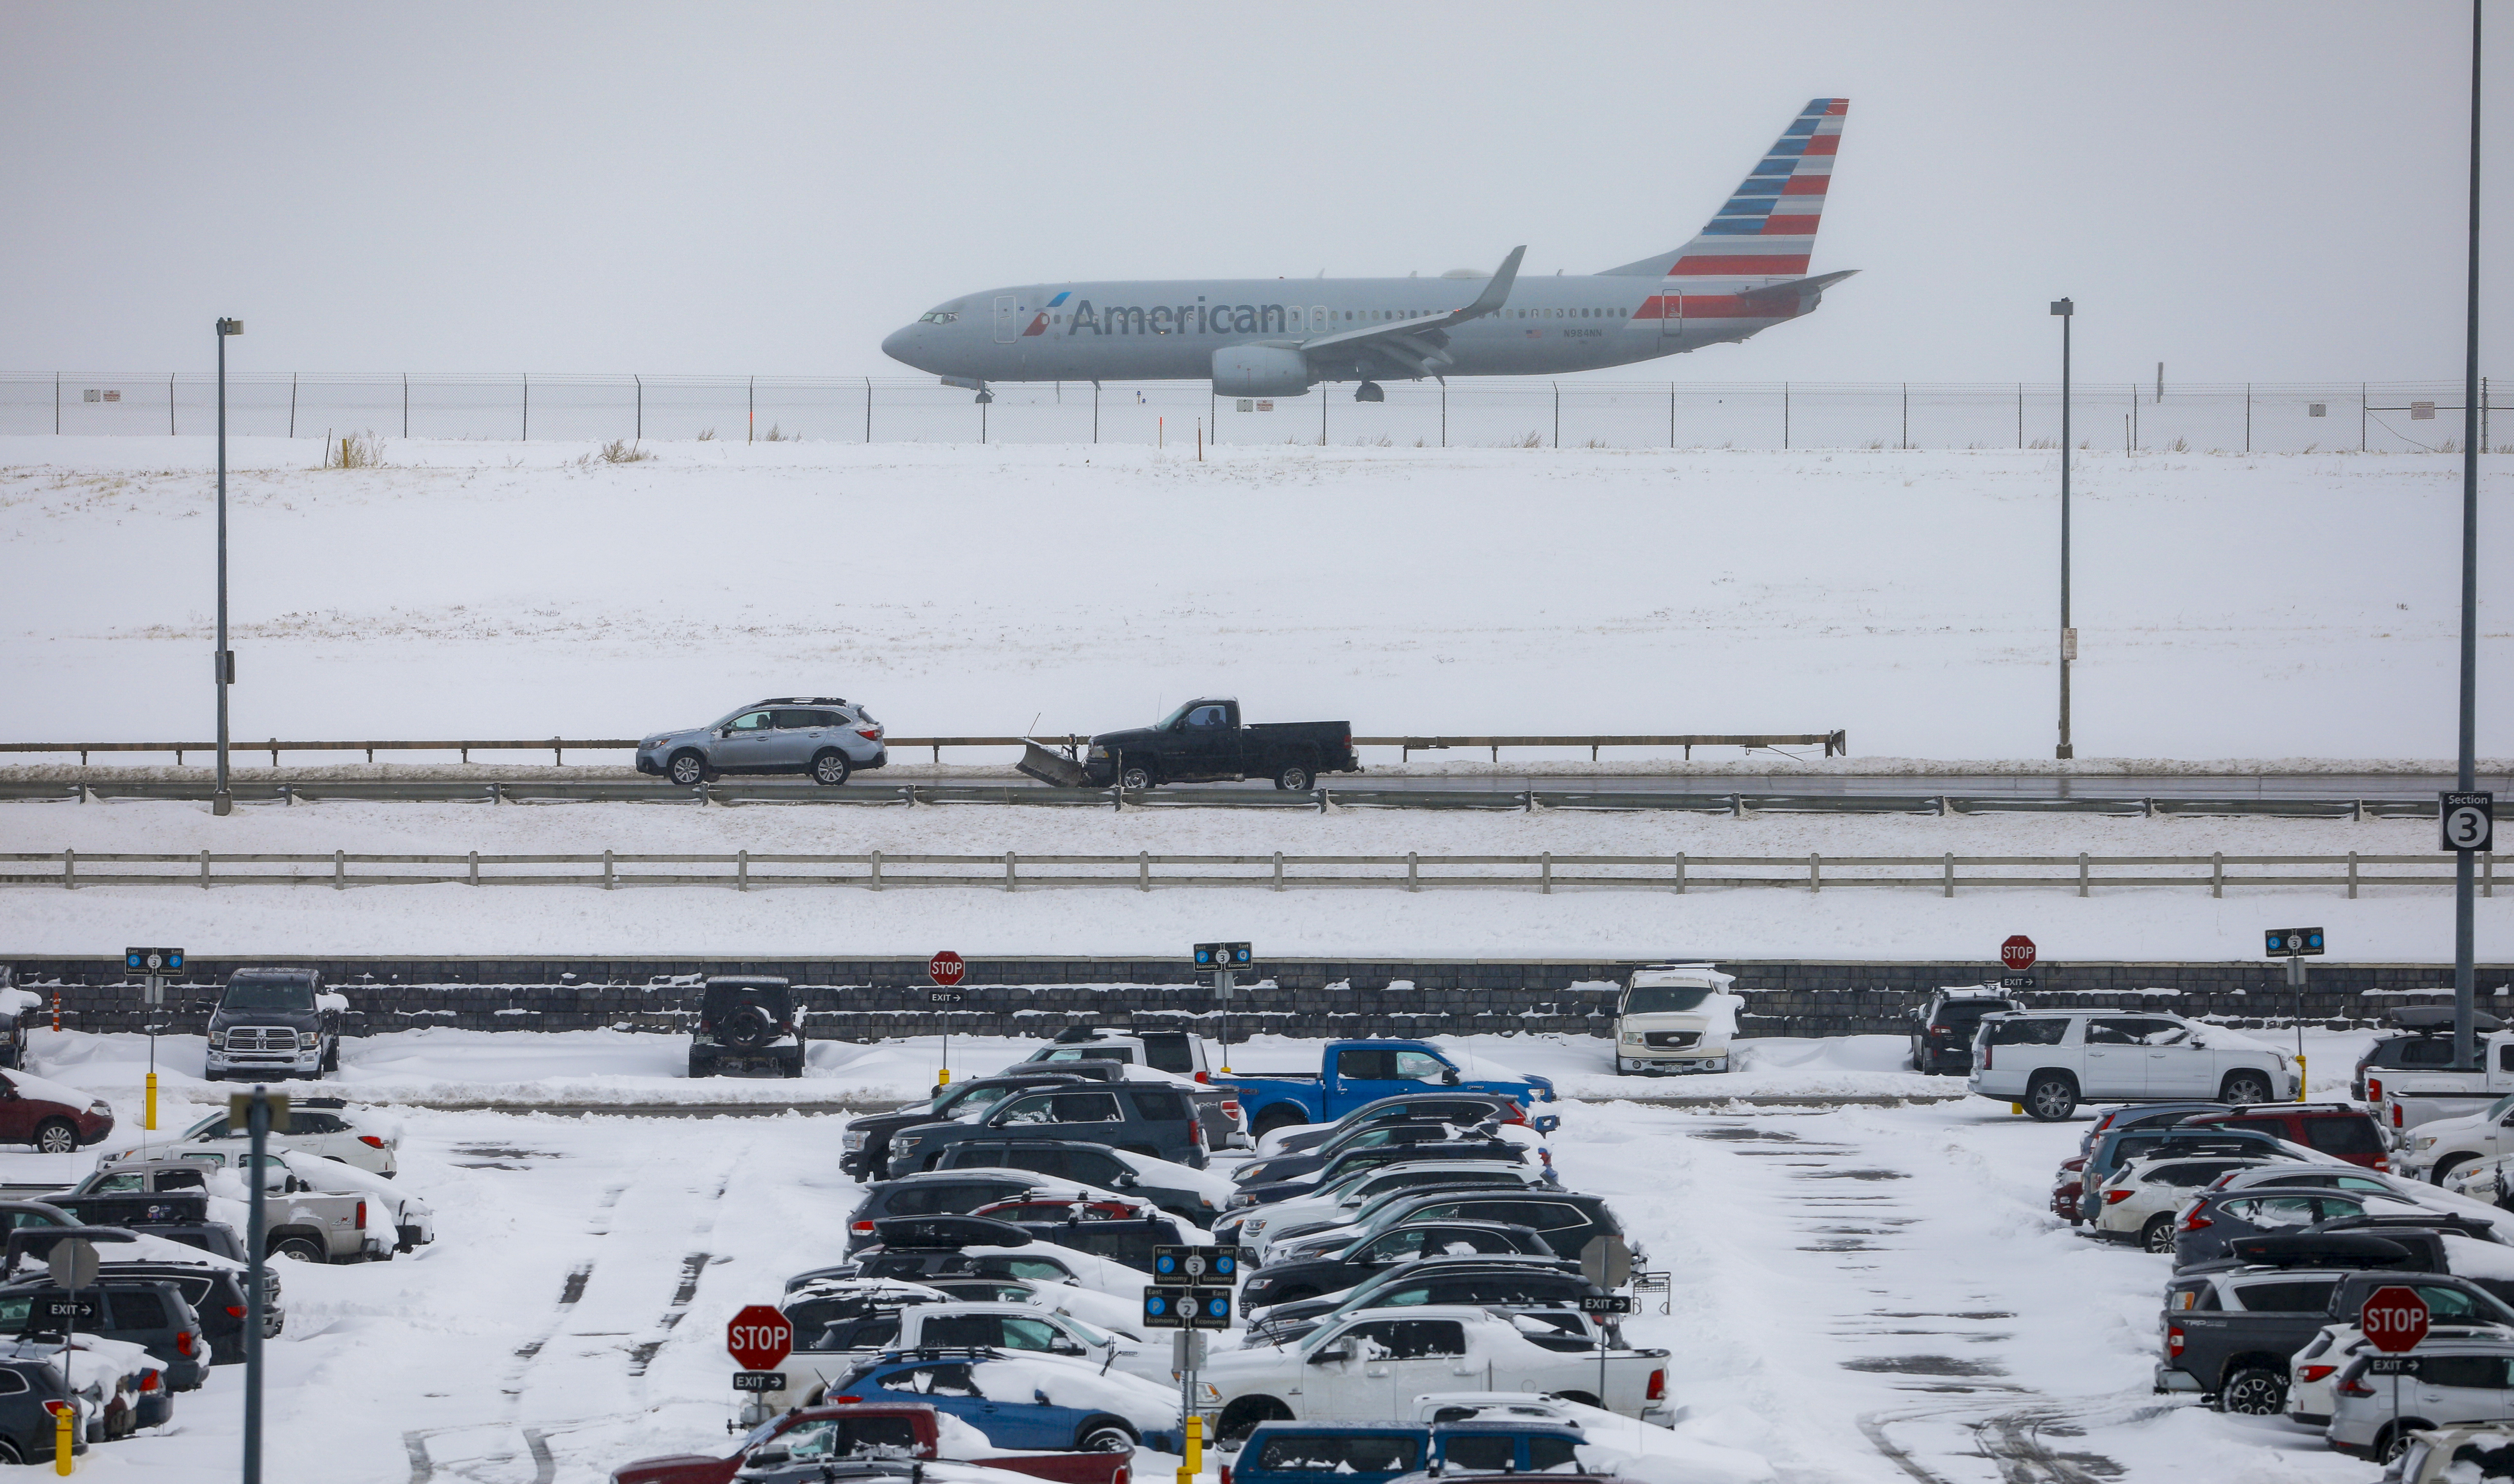 A jet passes snow-covered cars parked at Denver International Airport on November 26, 2019 in Denver, Colorado.